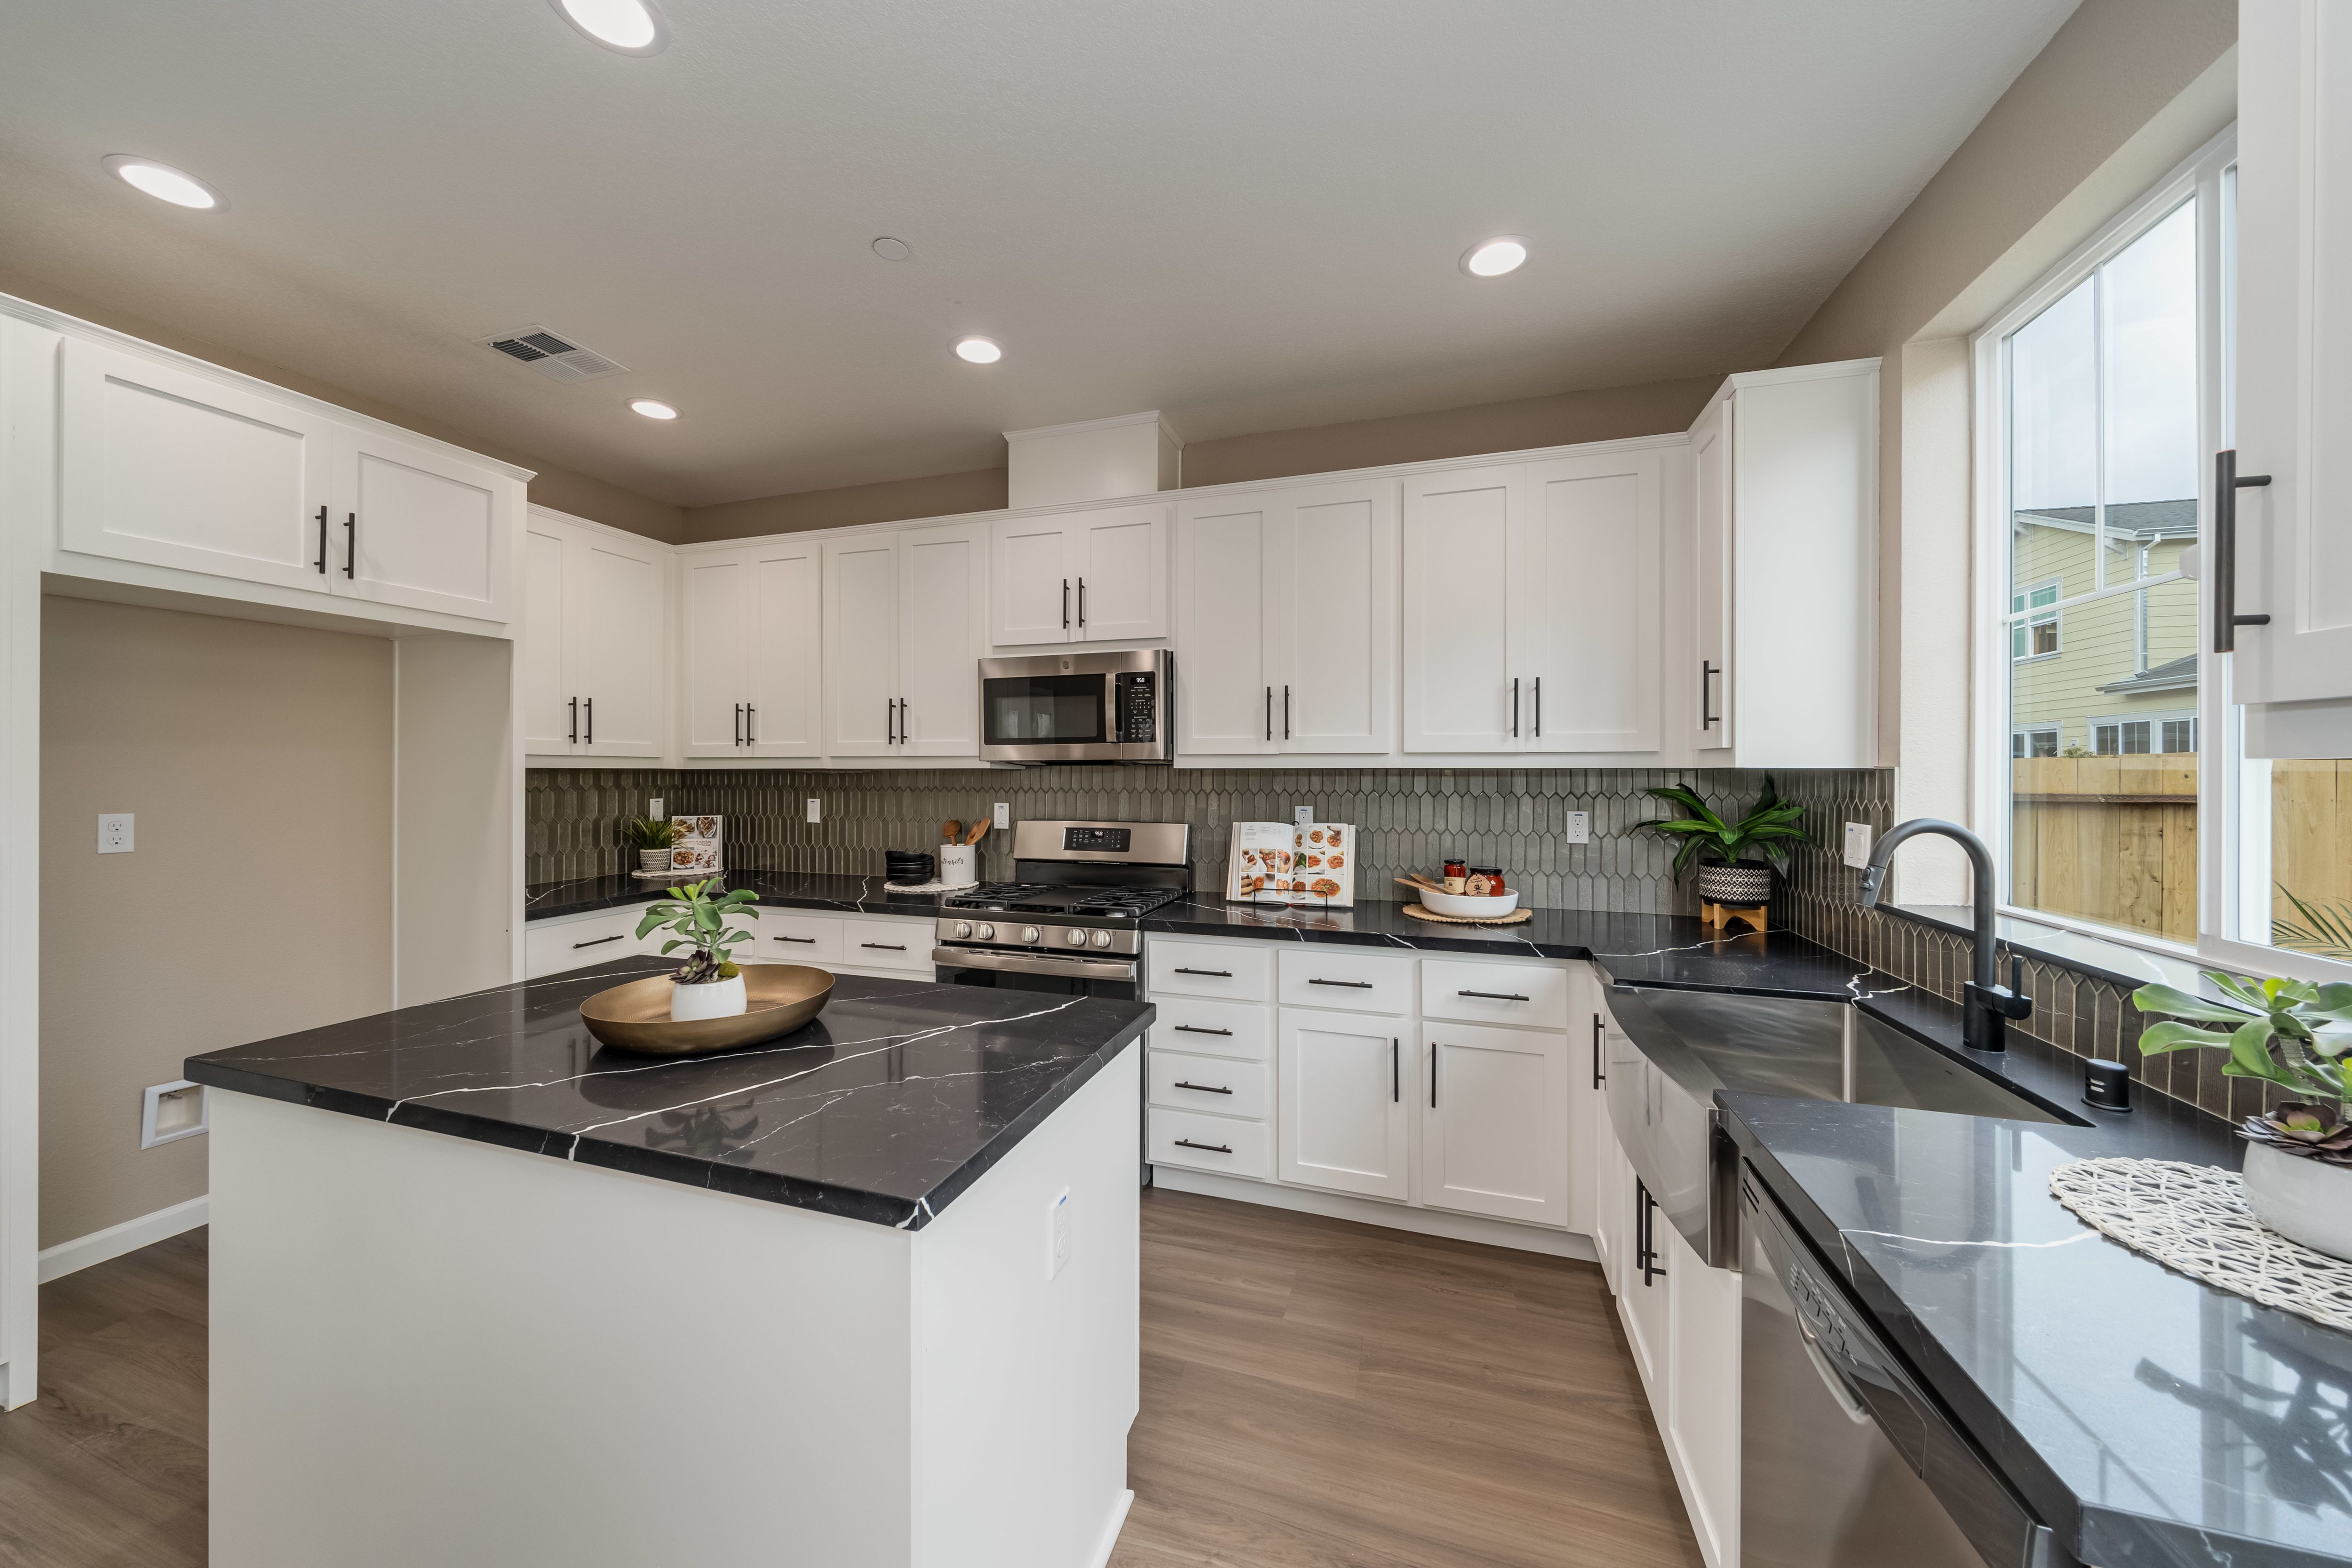 Kitchen featured in the Plan 1A By The Gardens in Santa Rosa, CA